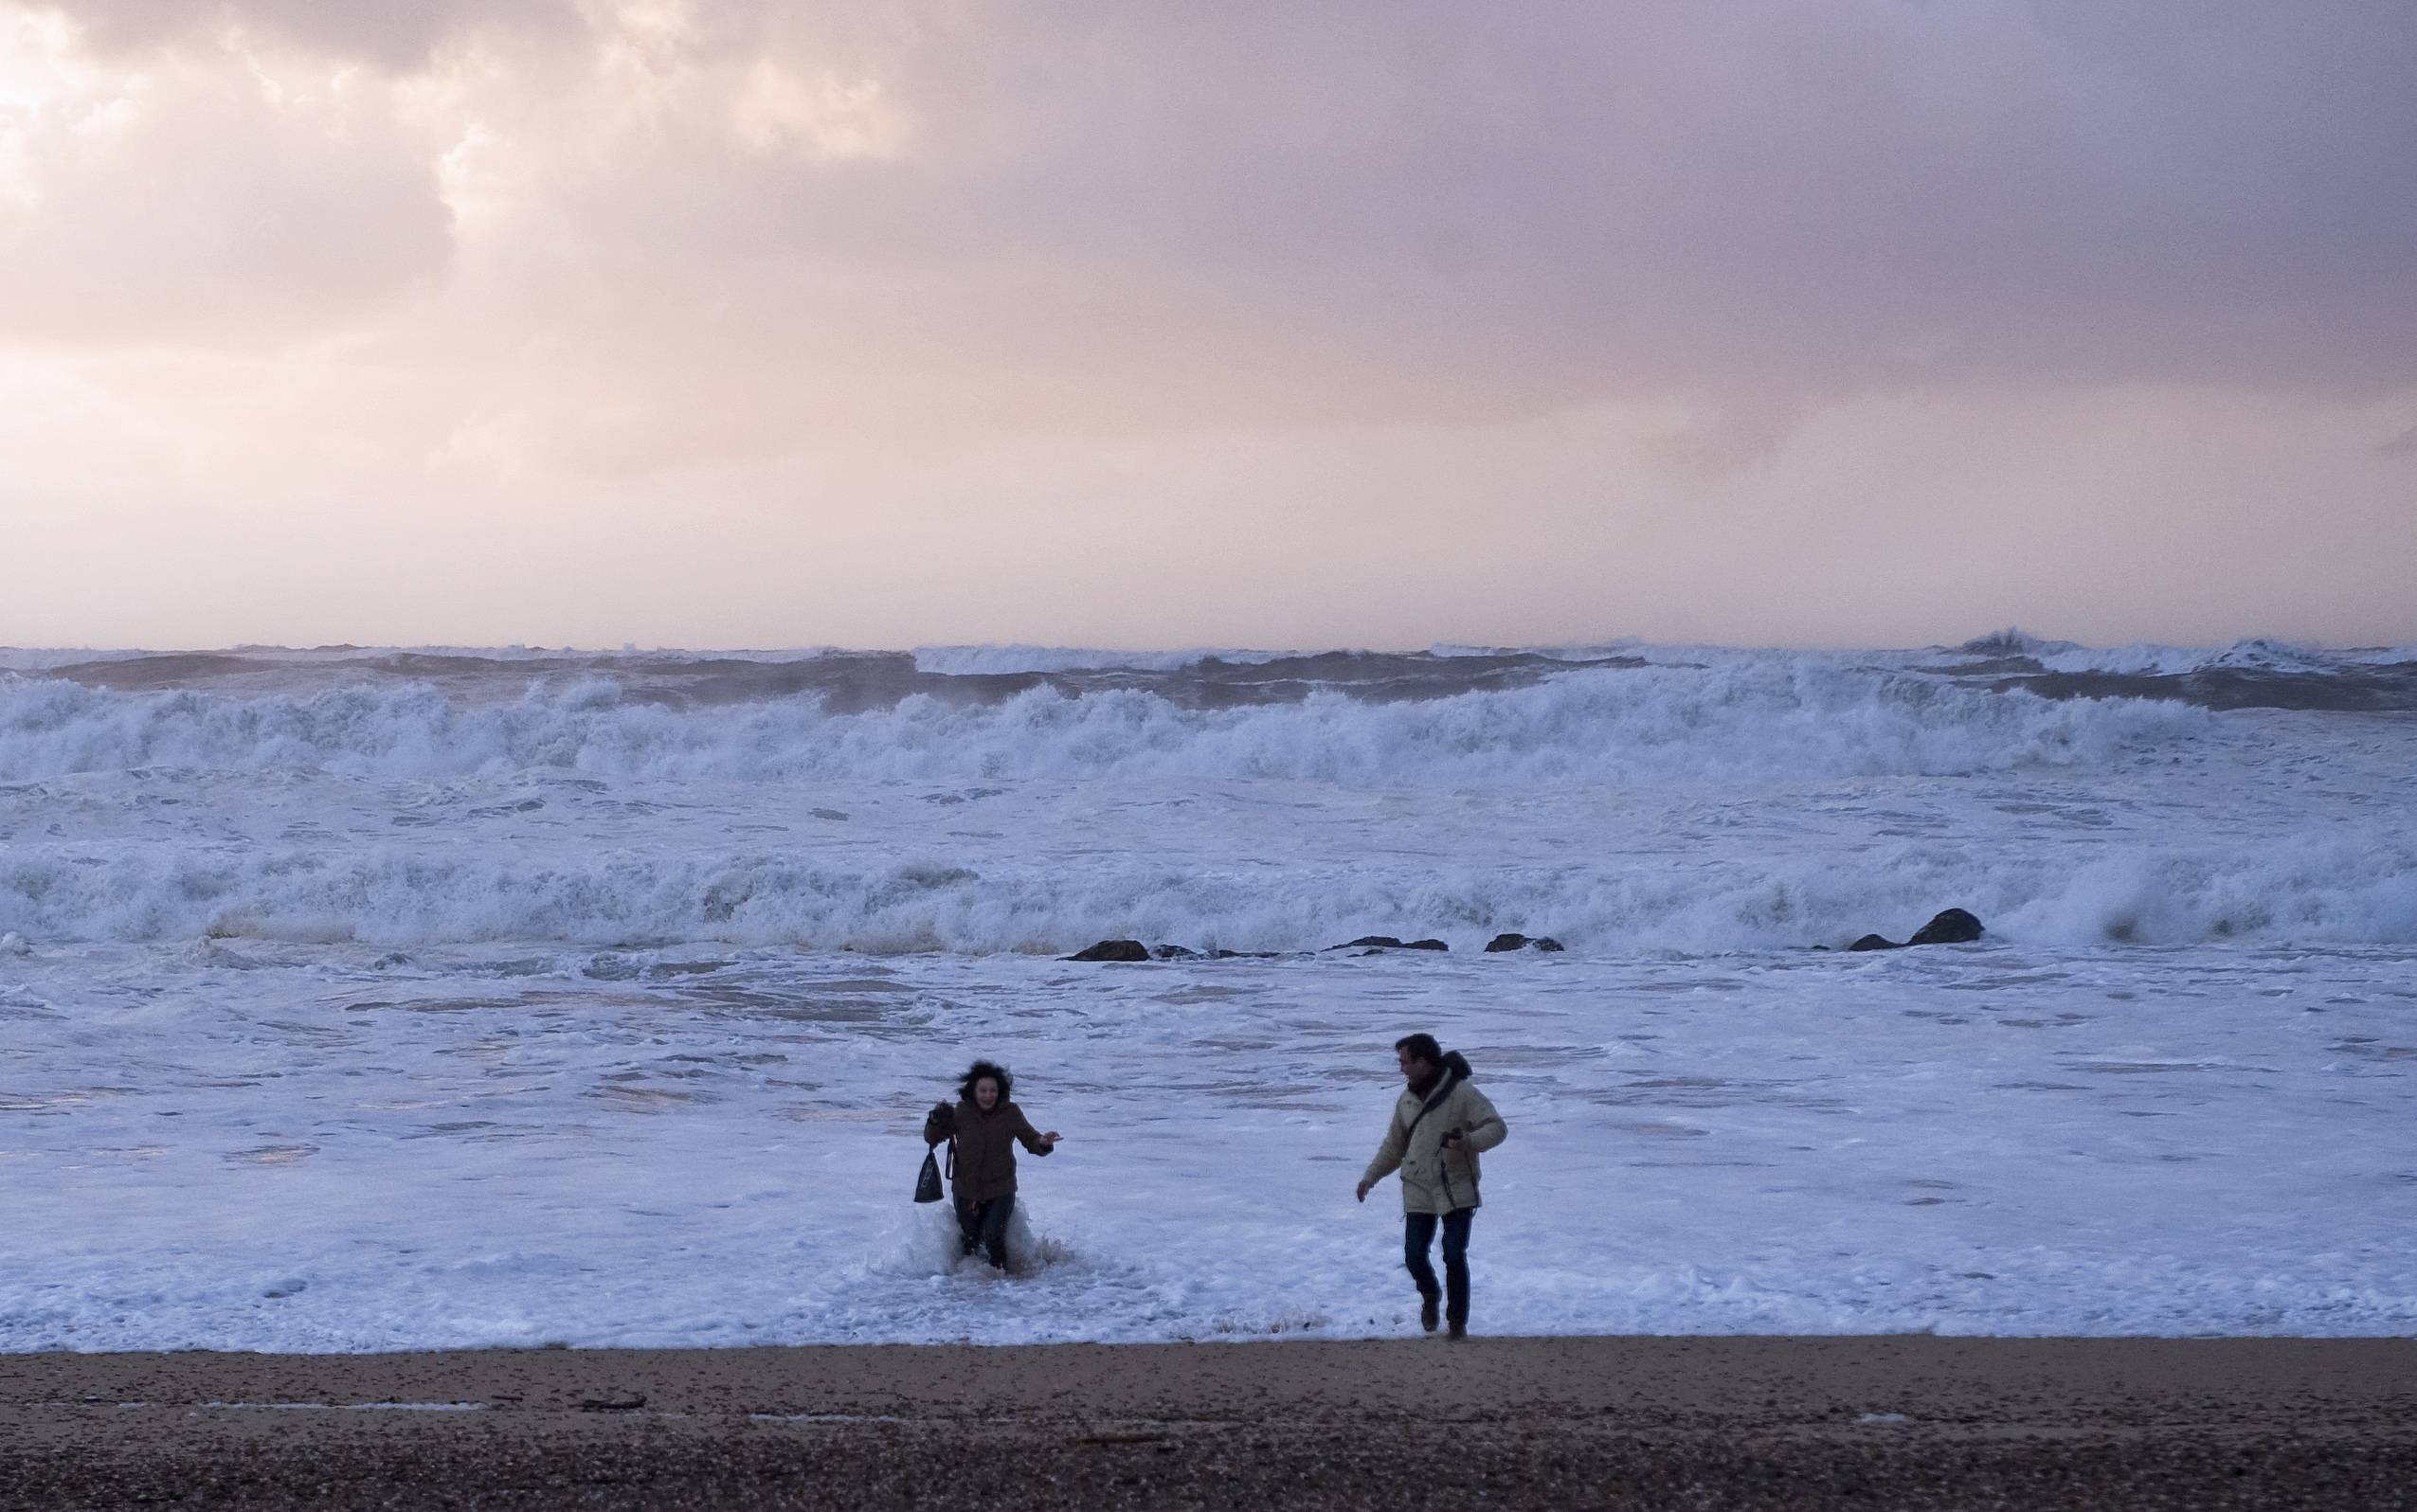 A couple is caught by the sea as rough waves lash the Miramar beach, Vila Nova de Gaia, northern Portugal Saturday, Feb. 8, 2014. The Portuguese weather institute put the entire coast of Portugal on red alert, the most serious in a scale of four, due to rough seas.